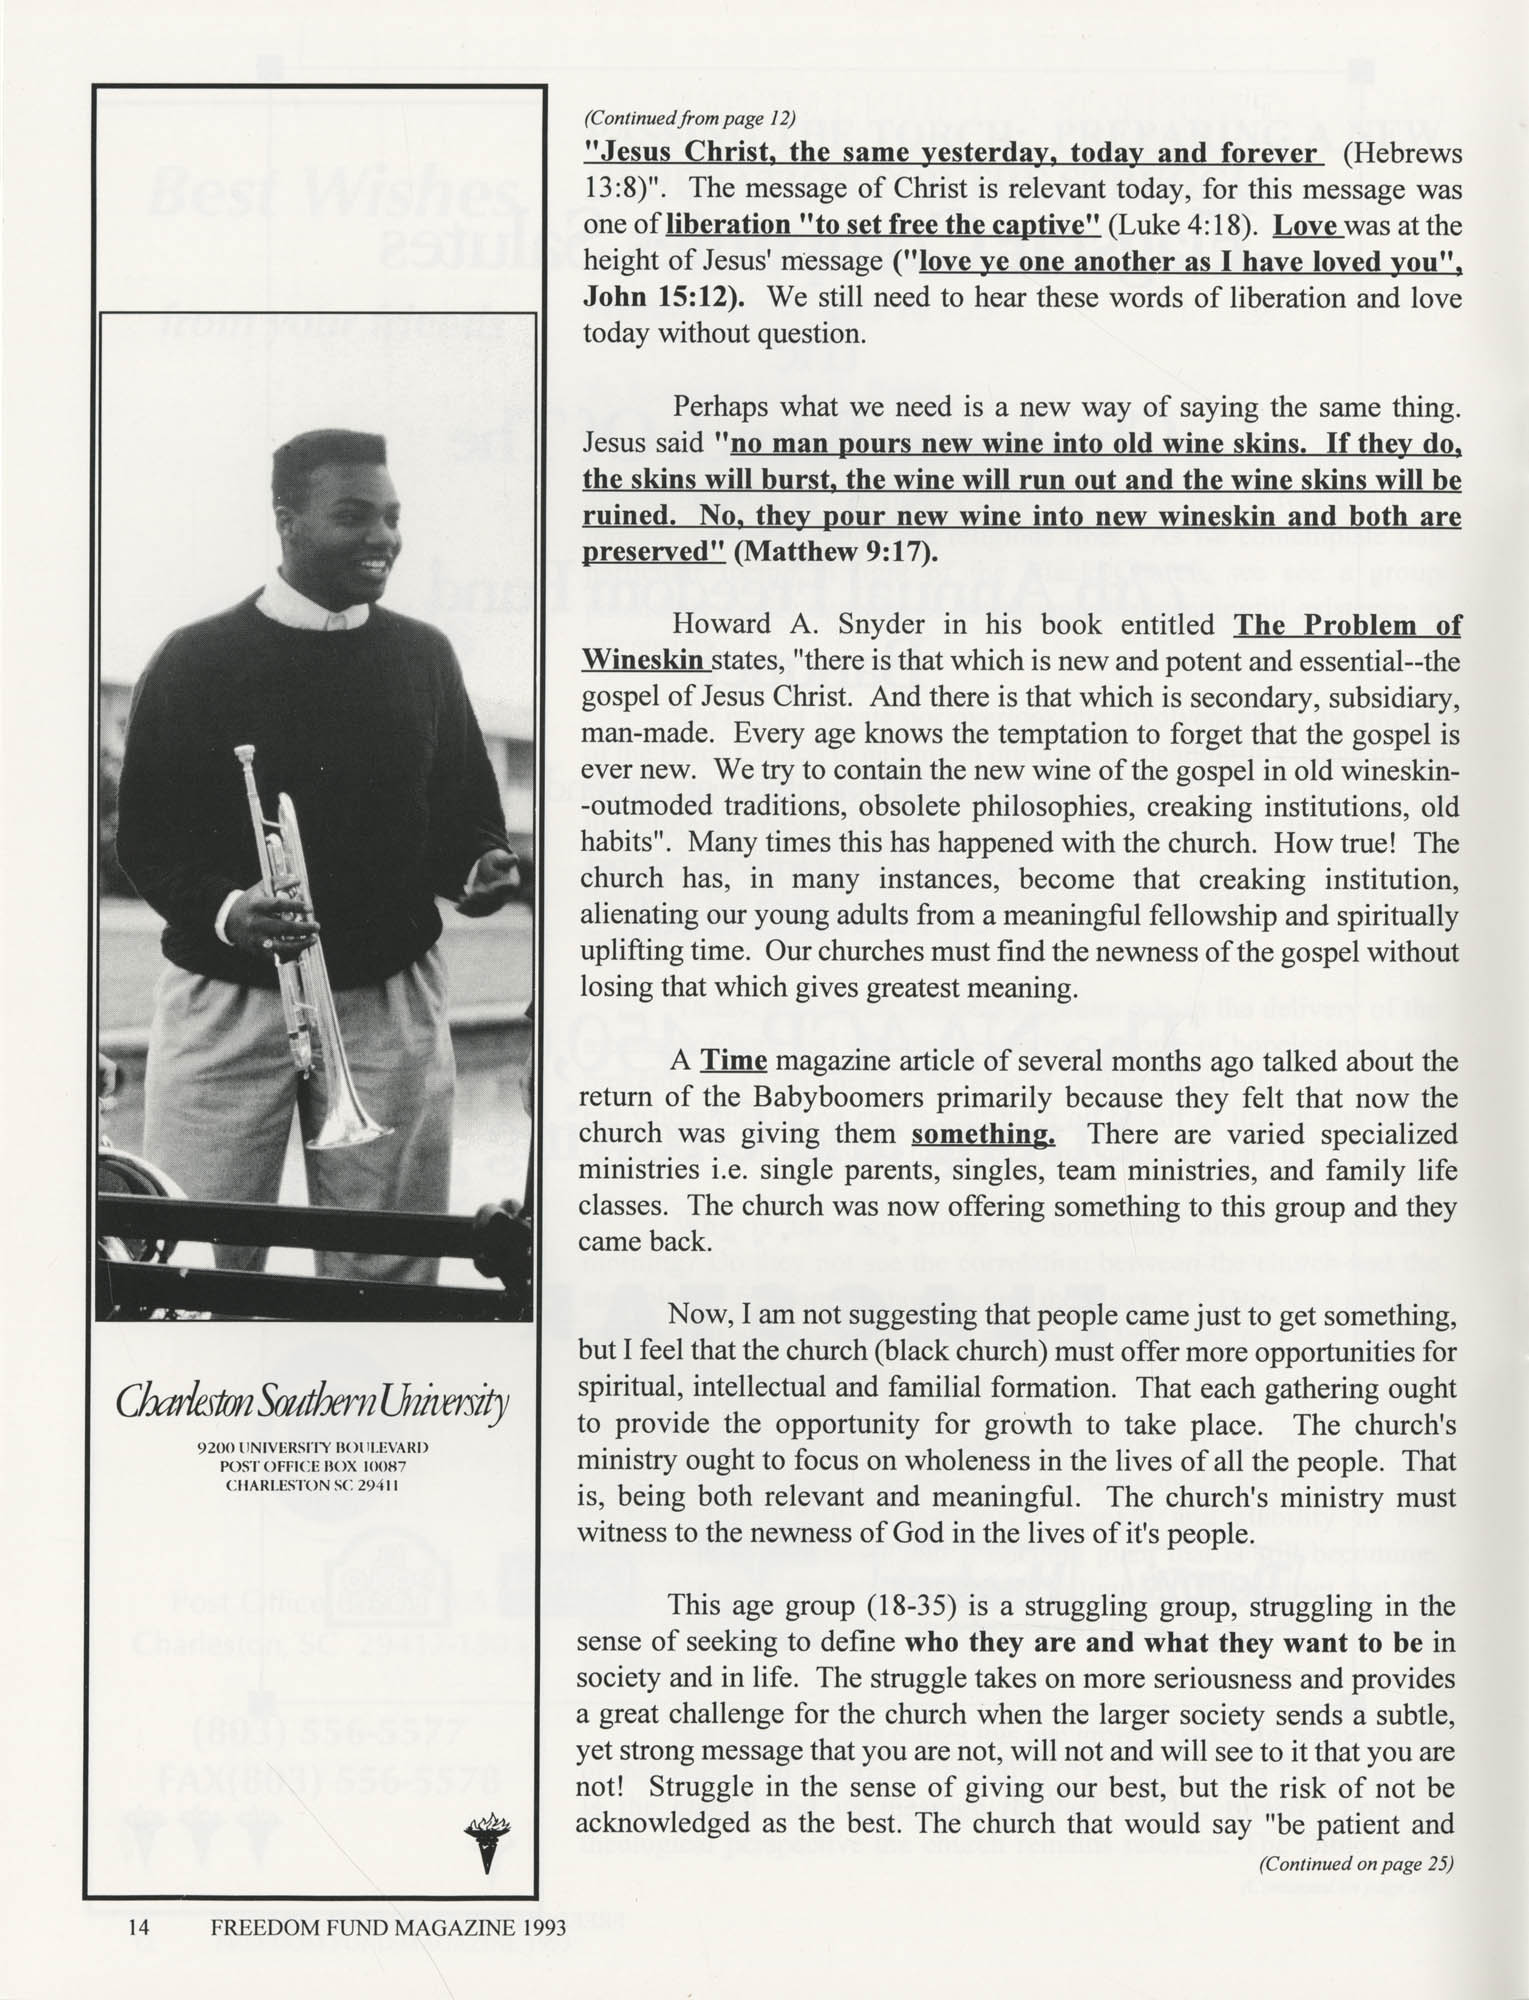 Freedom Fund Magazine, 1993, Page 14